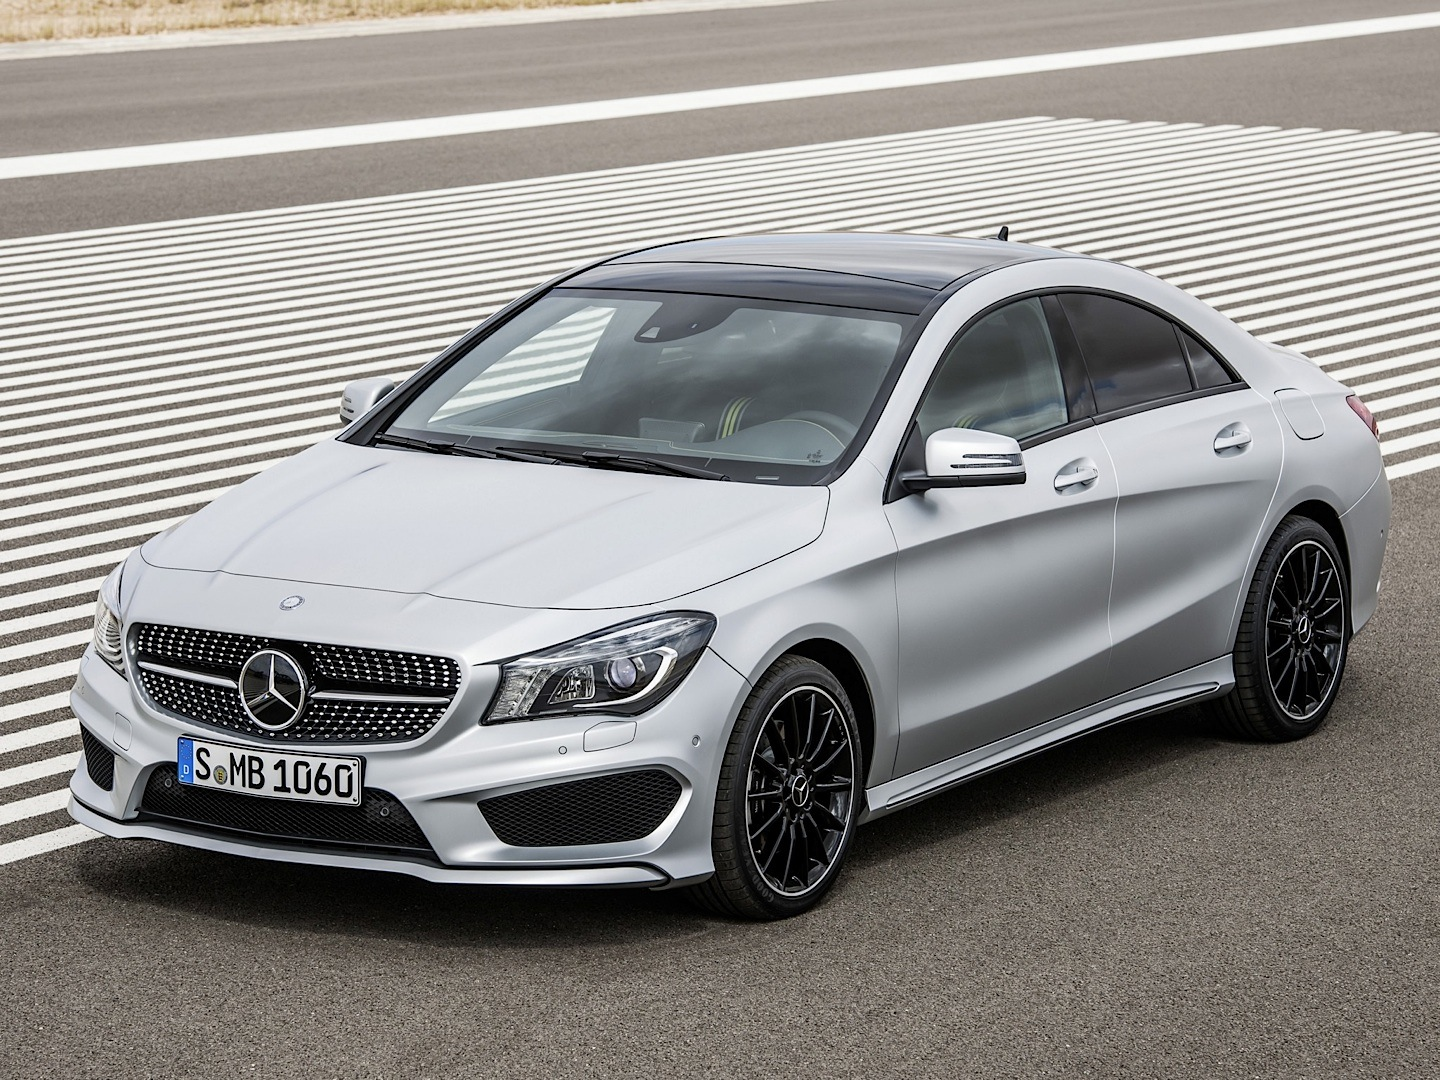 2014 mercedes benz cla 250 gets rated by the epa for 2014 mercedes benz cla class cla 250 specs